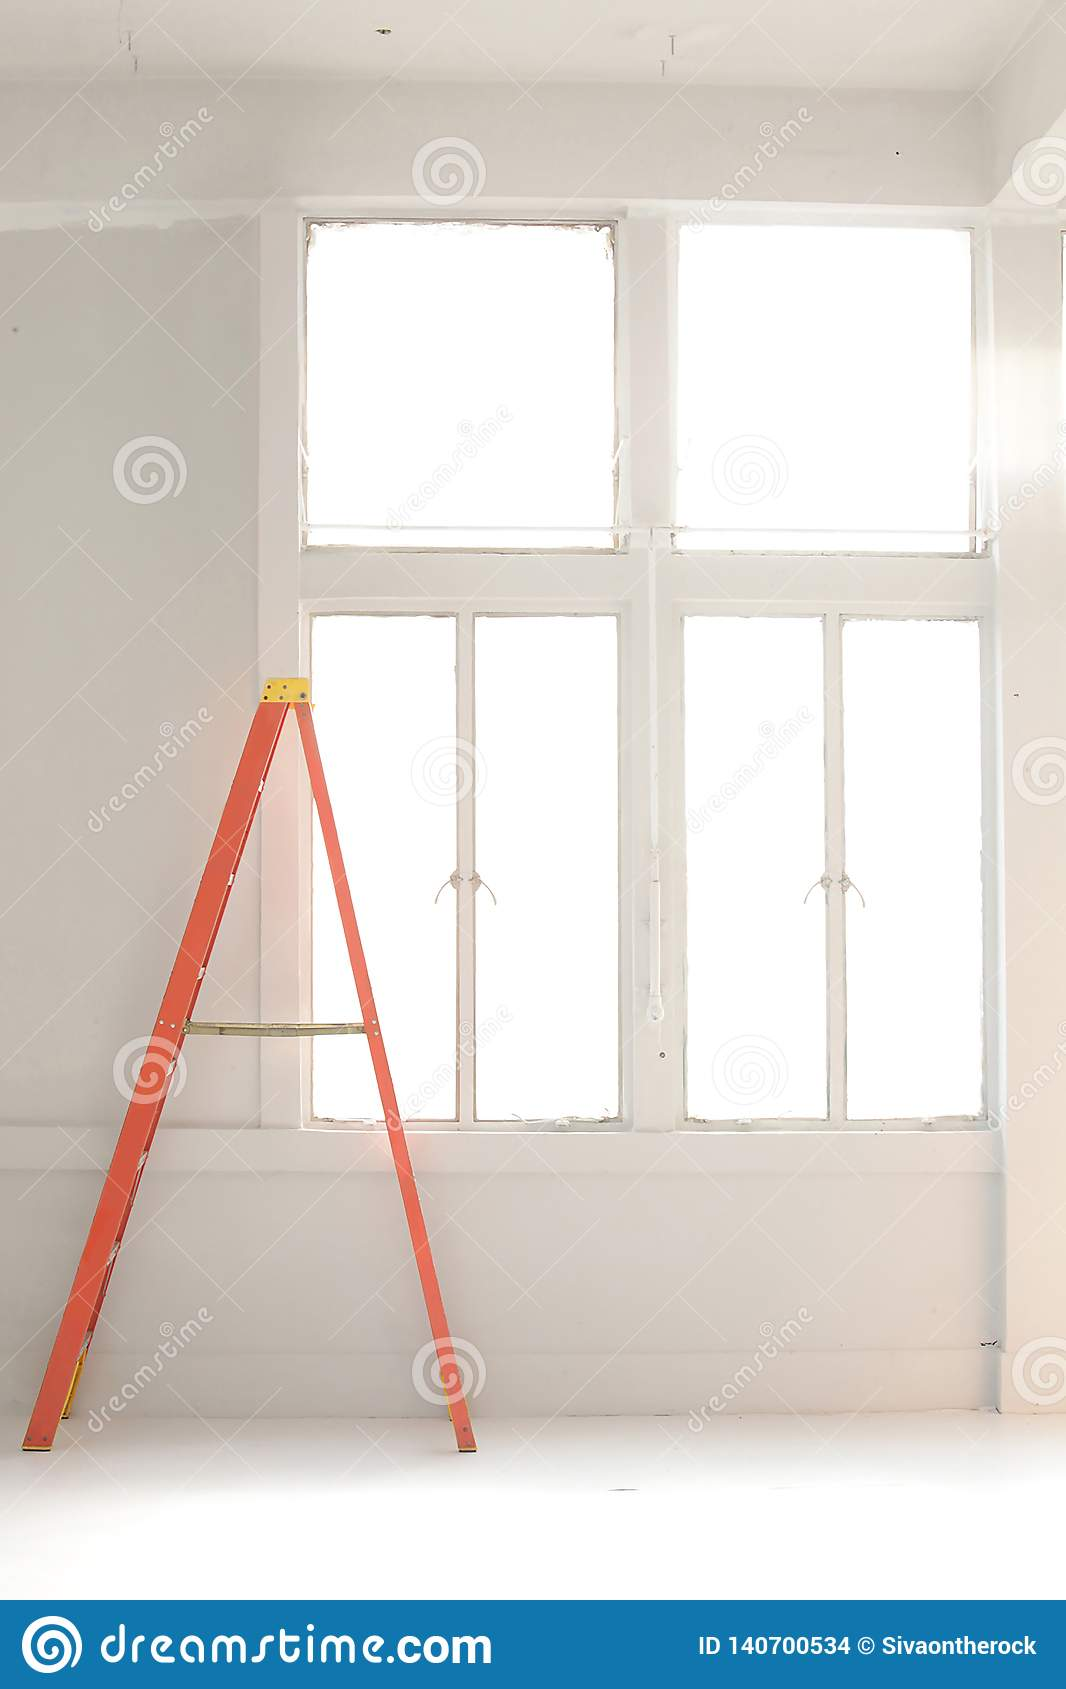 Orange ladder by the white wall